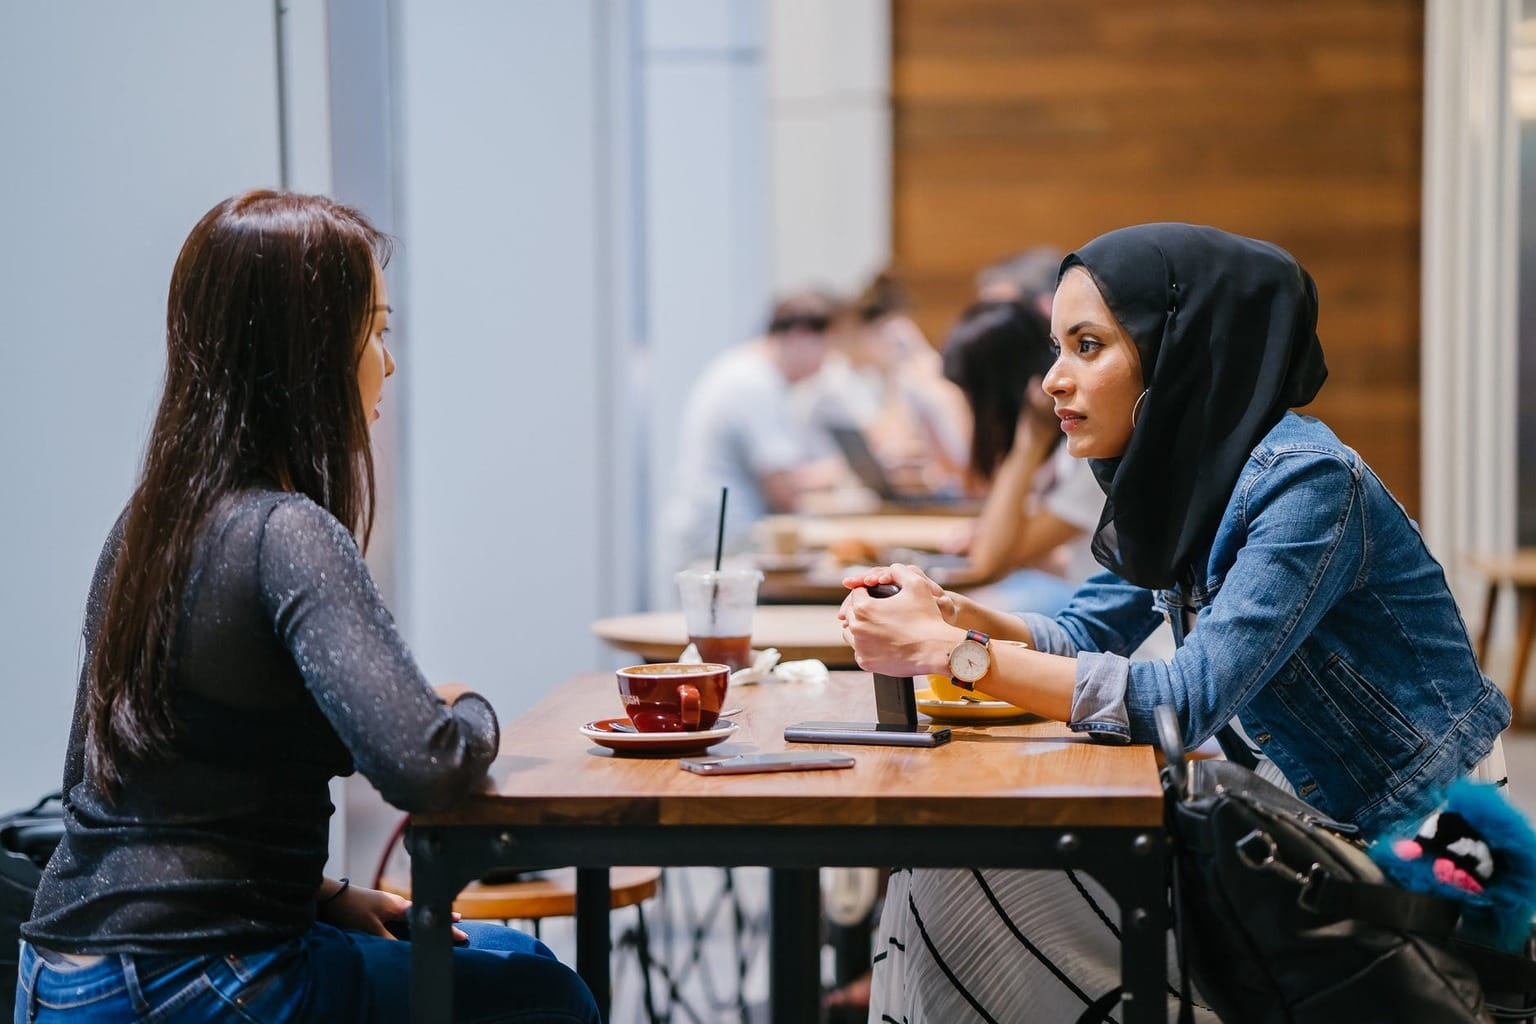 Two friends sitting at a table with coffee talking